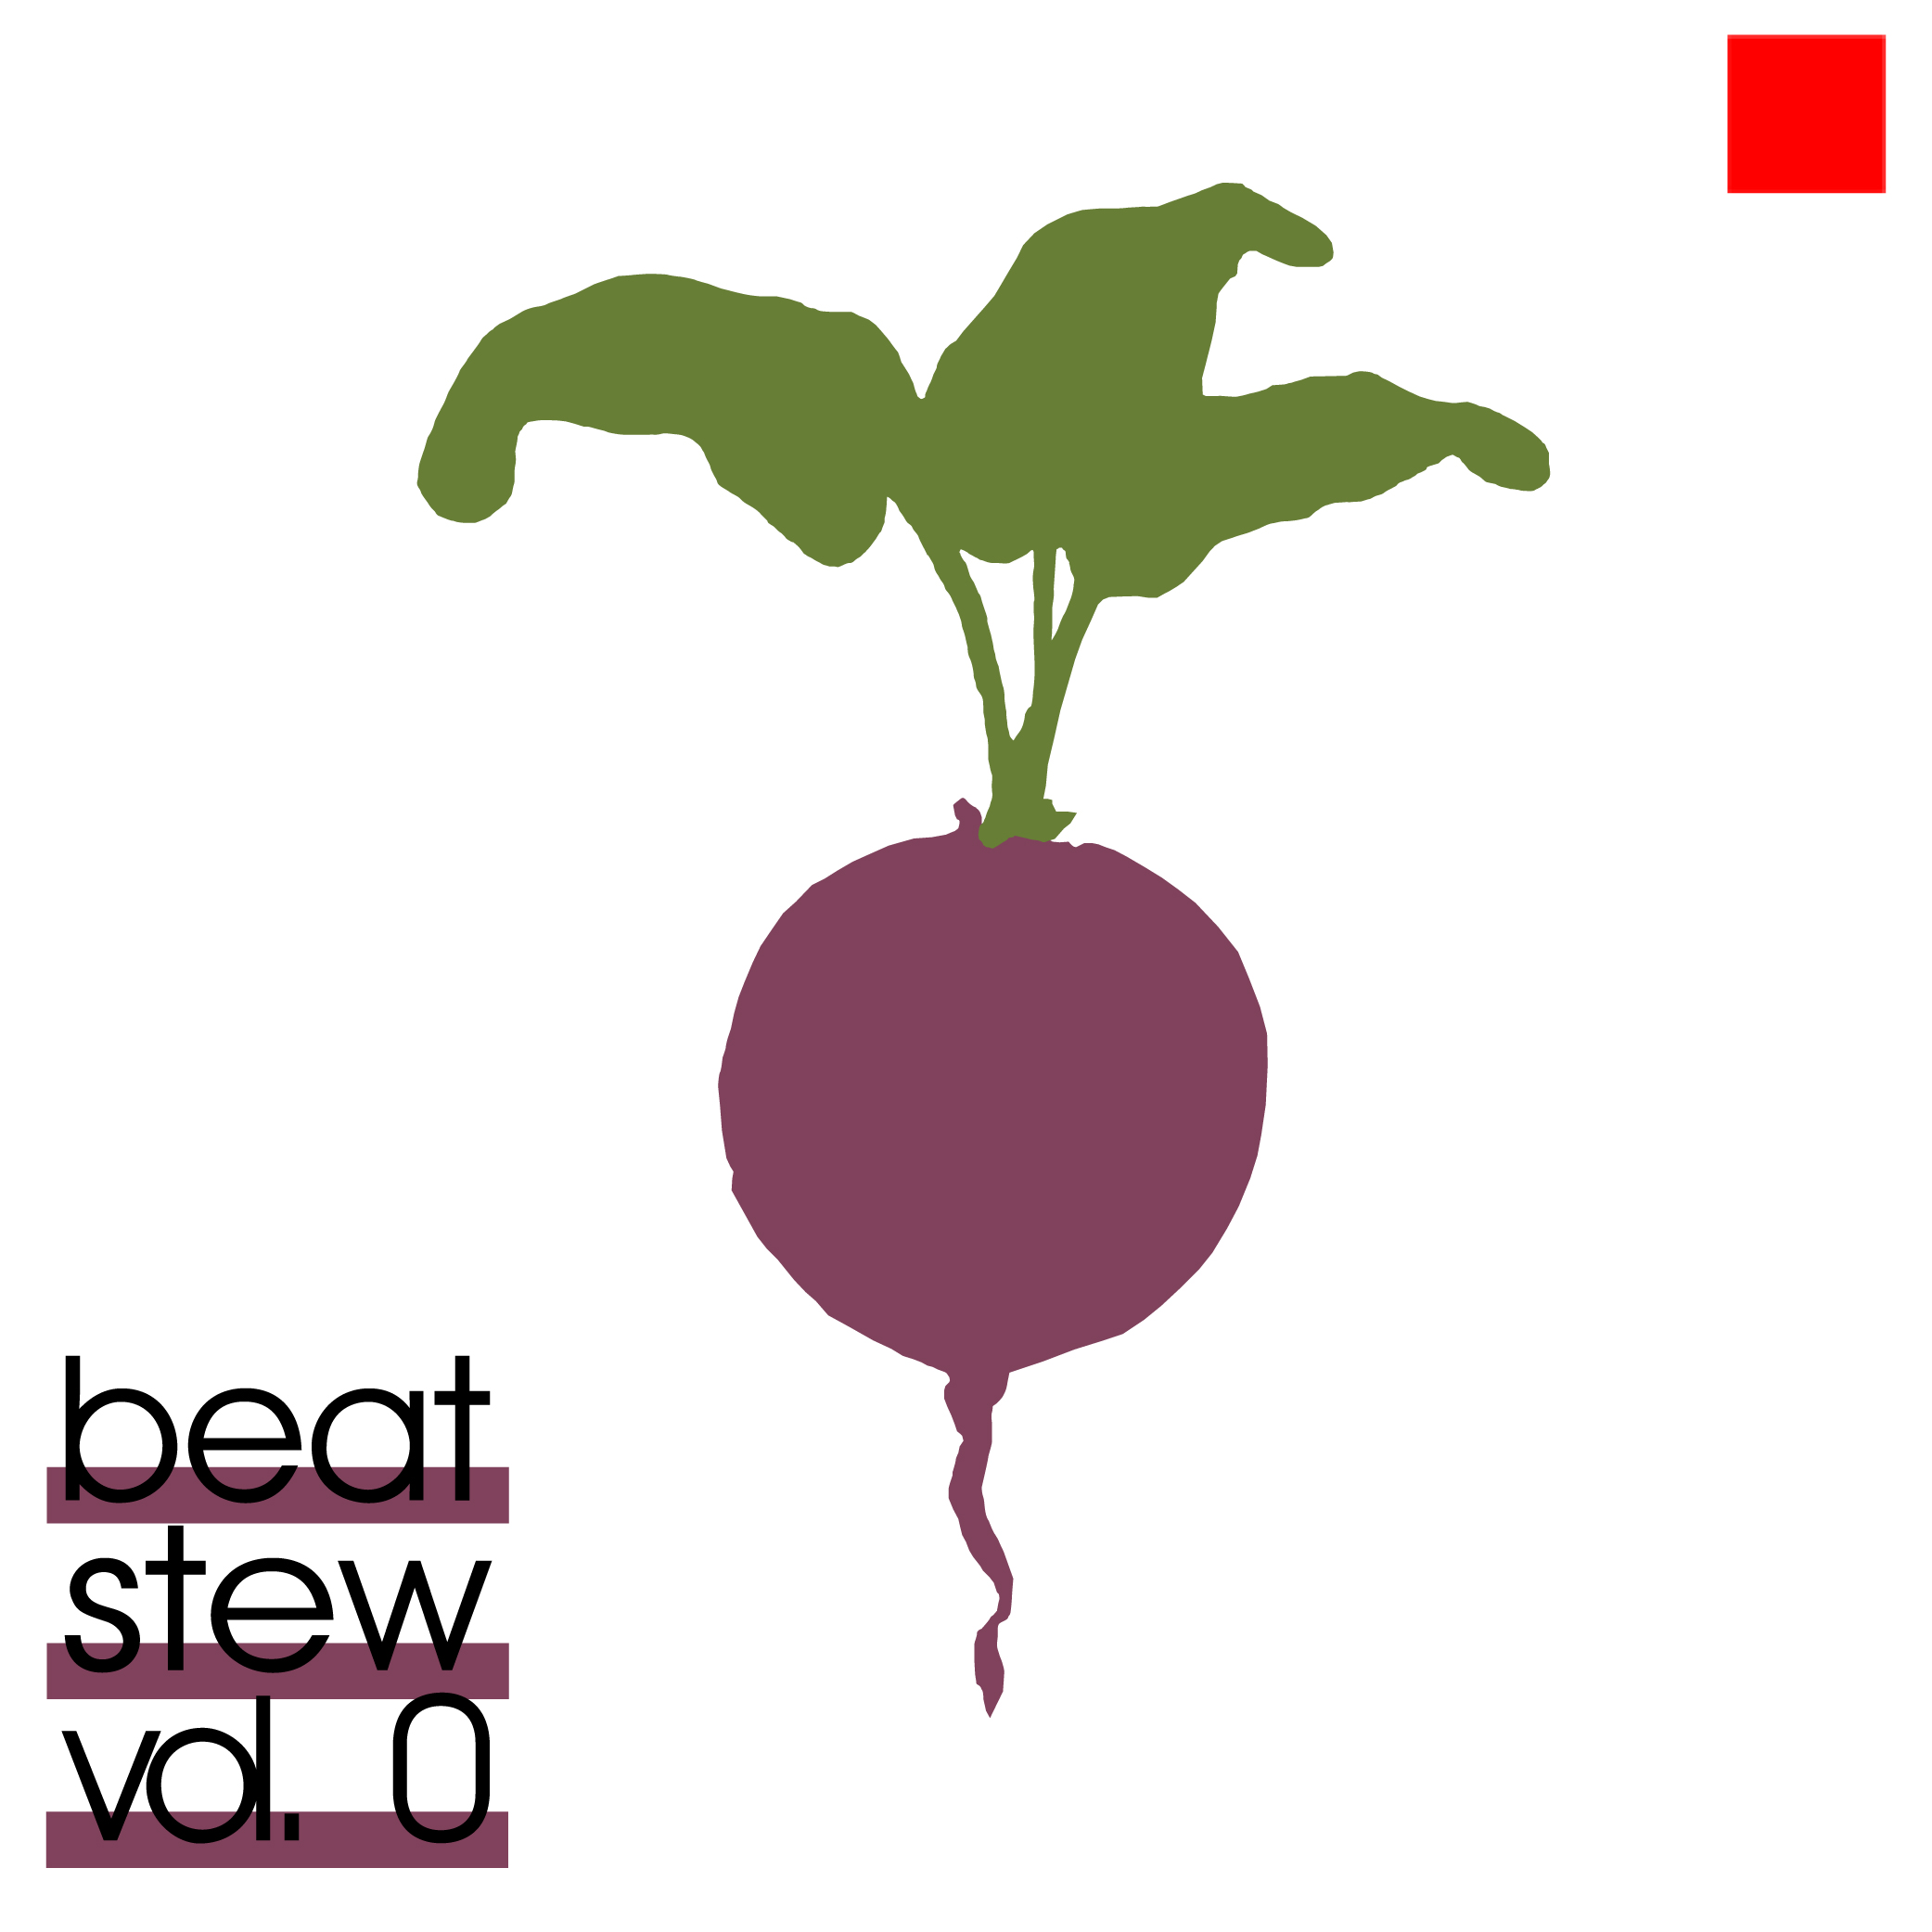 Beat Stew Volume 0